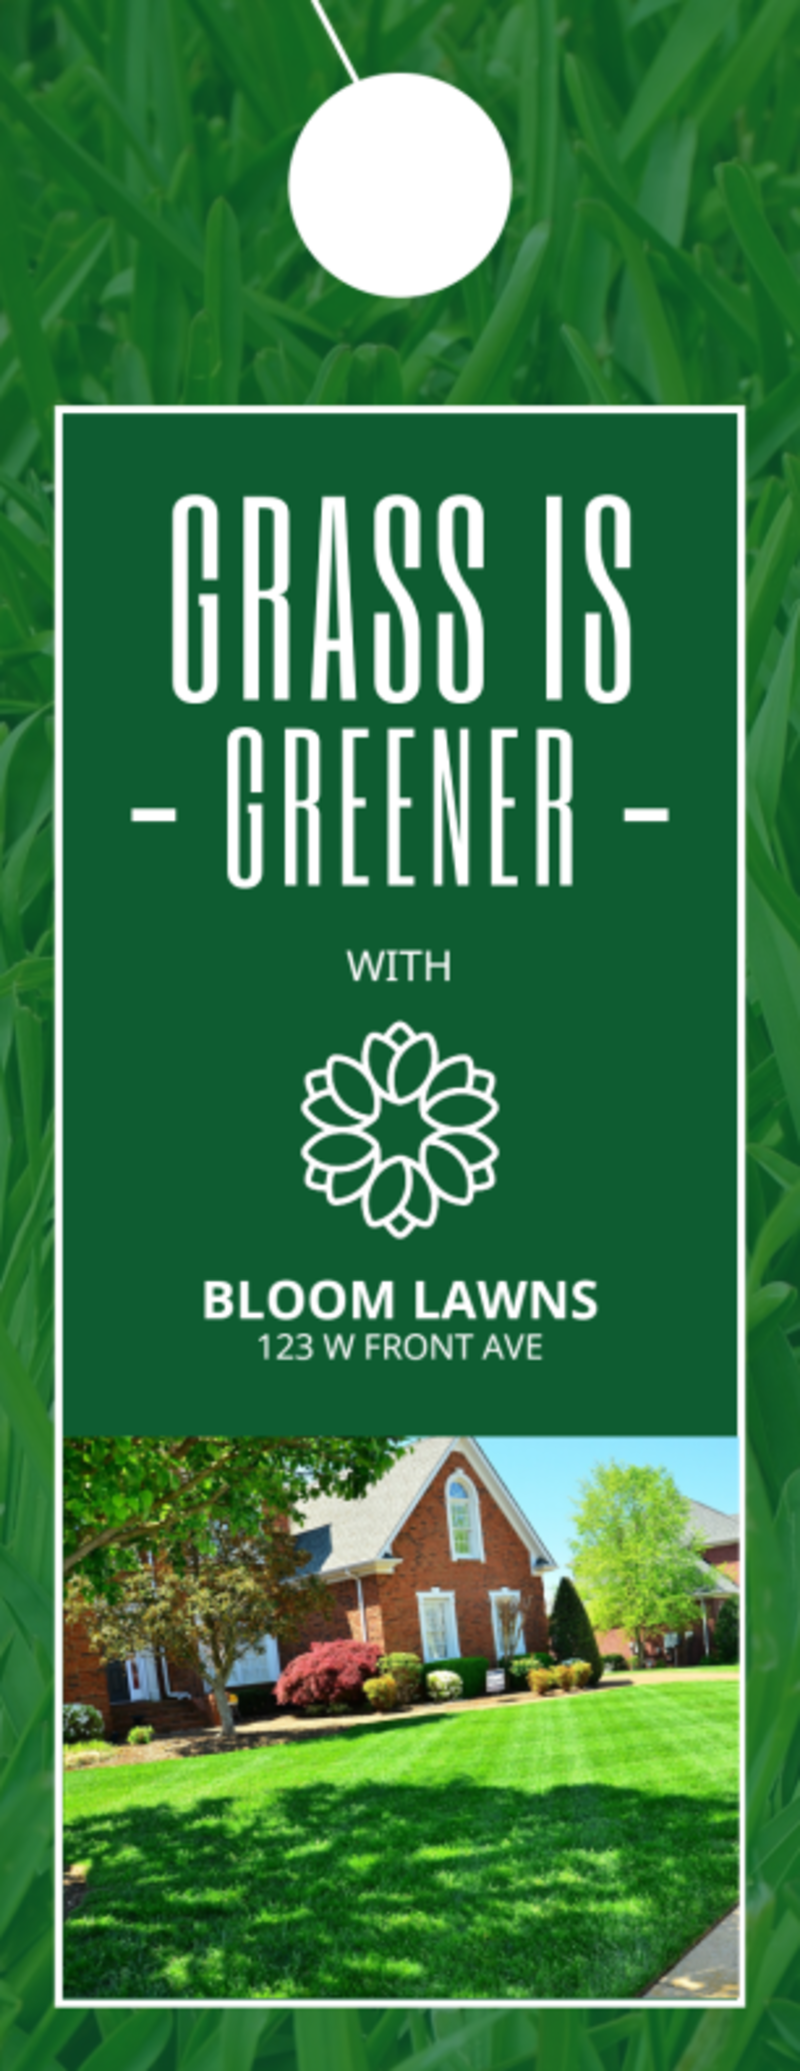 Greener Lawns Door Hanger Template Preview 2